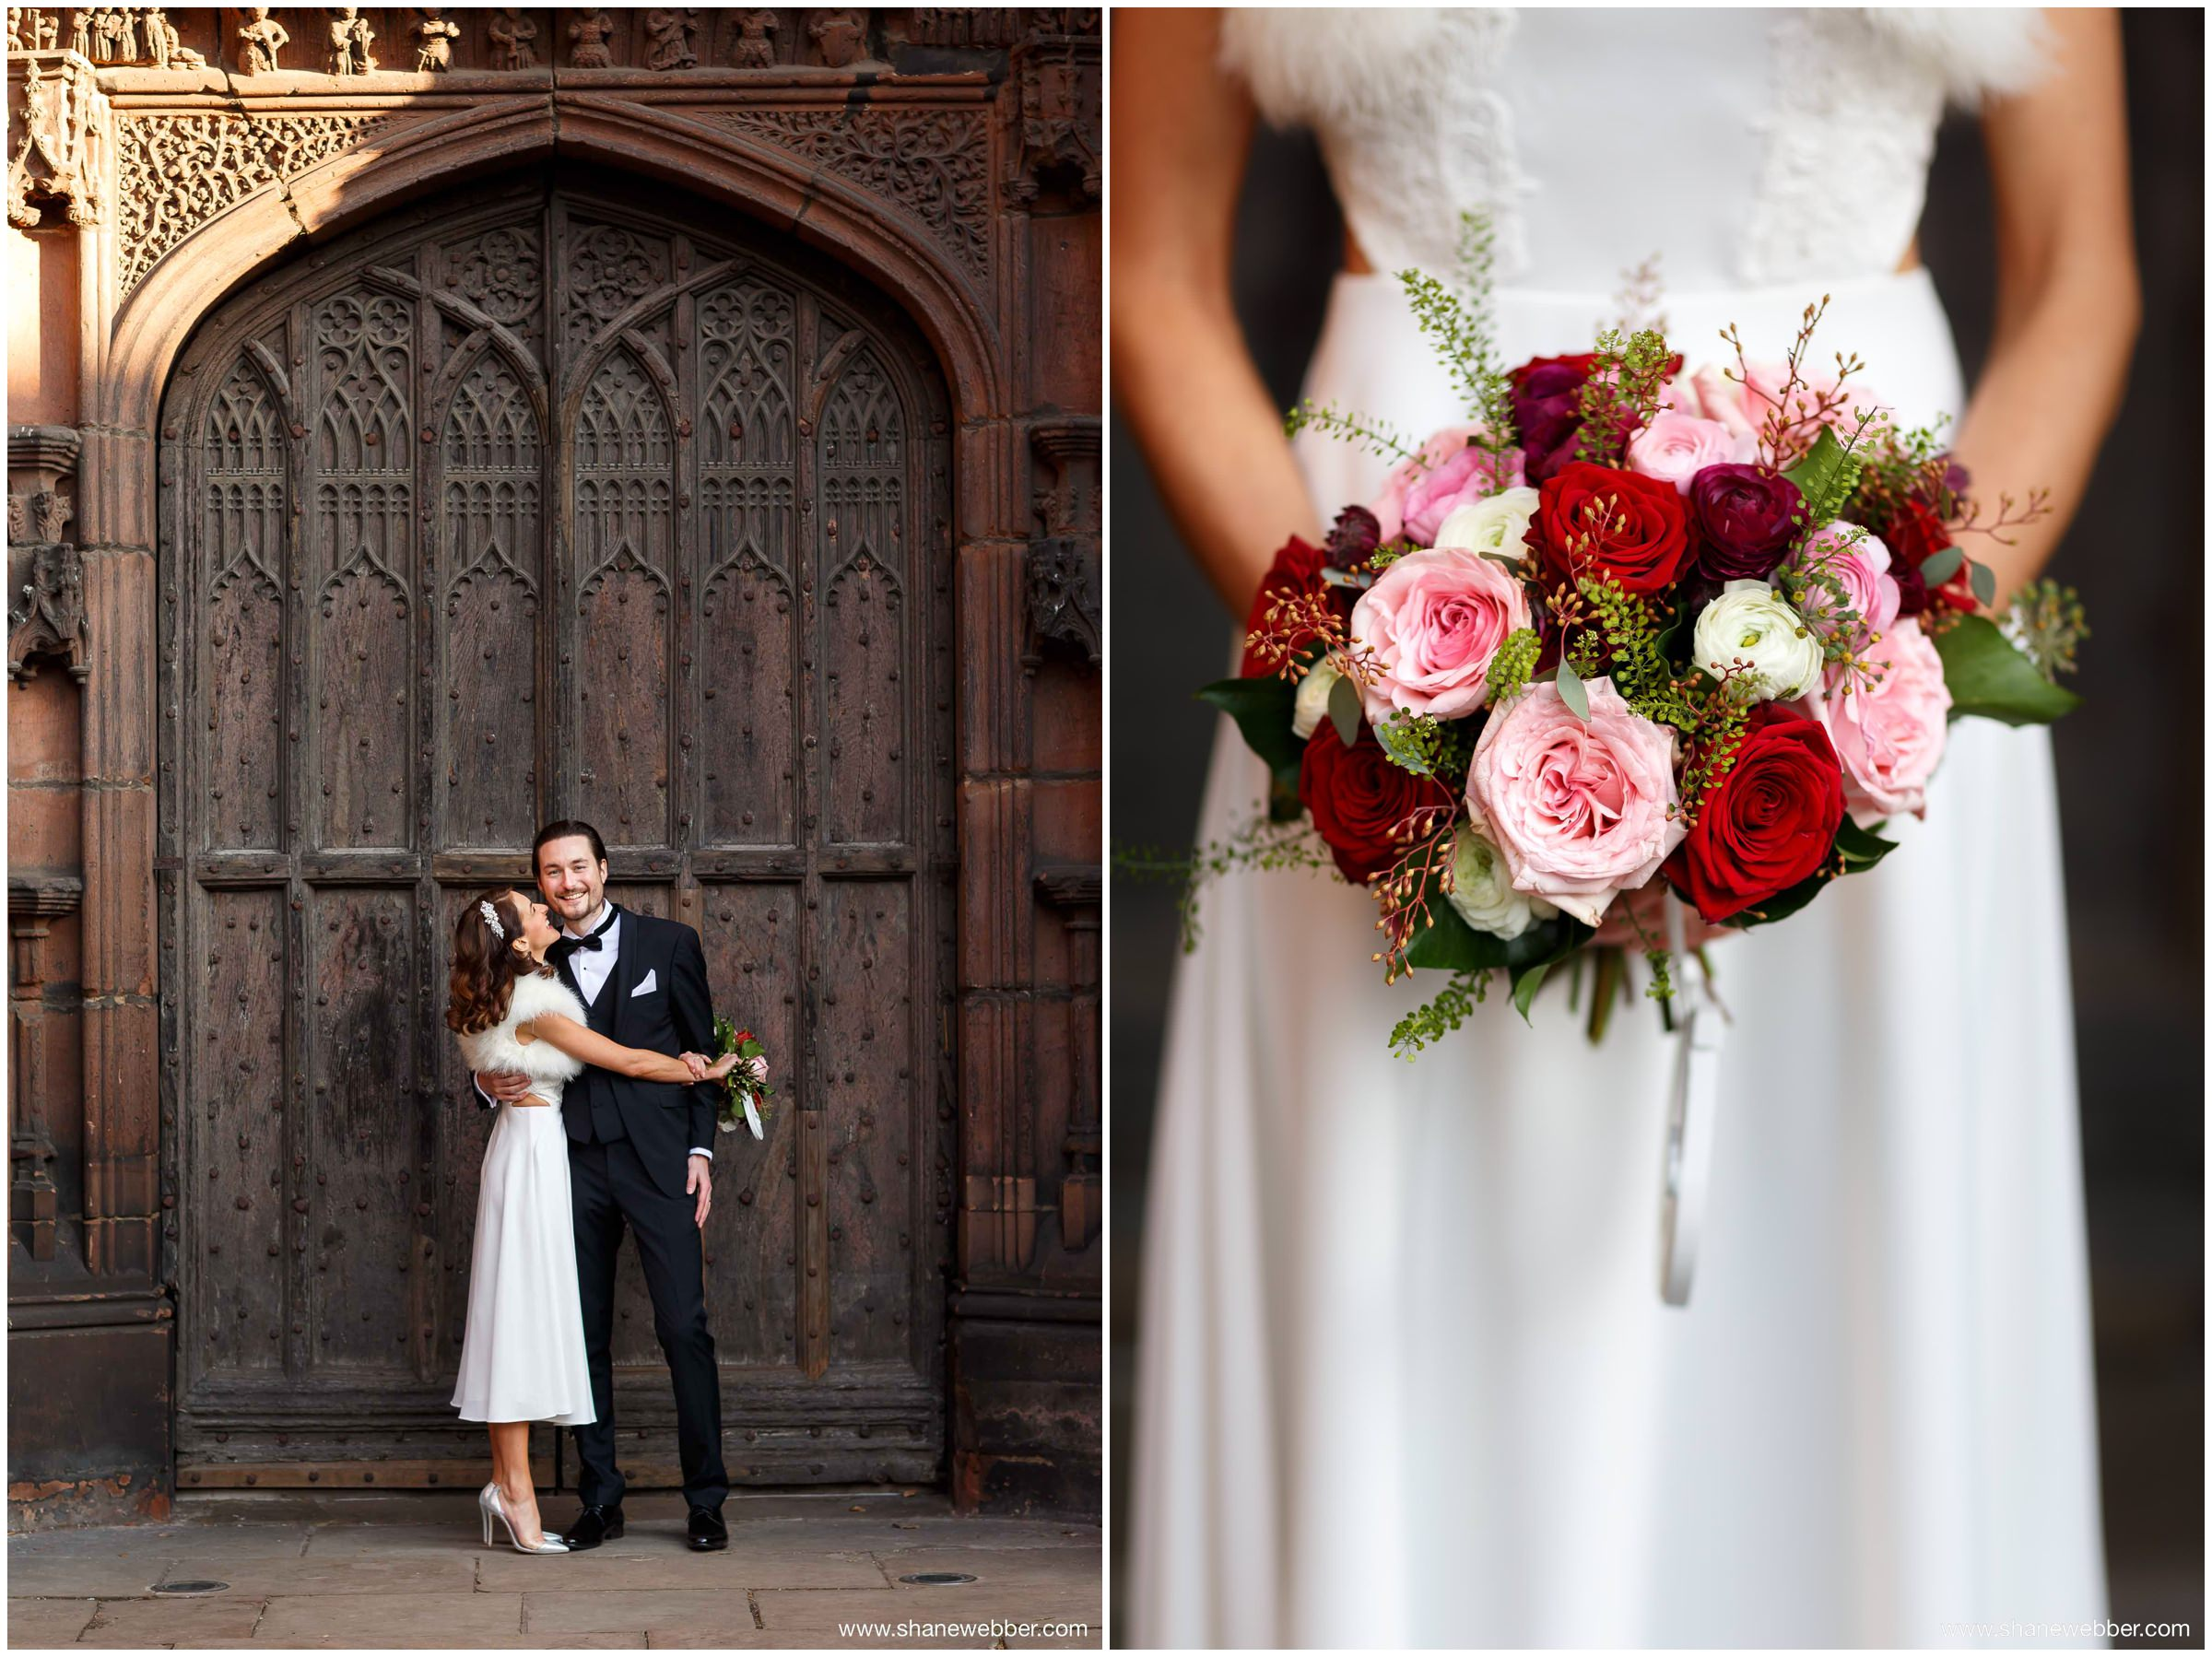 Wedding Photography at Chester Town Hall